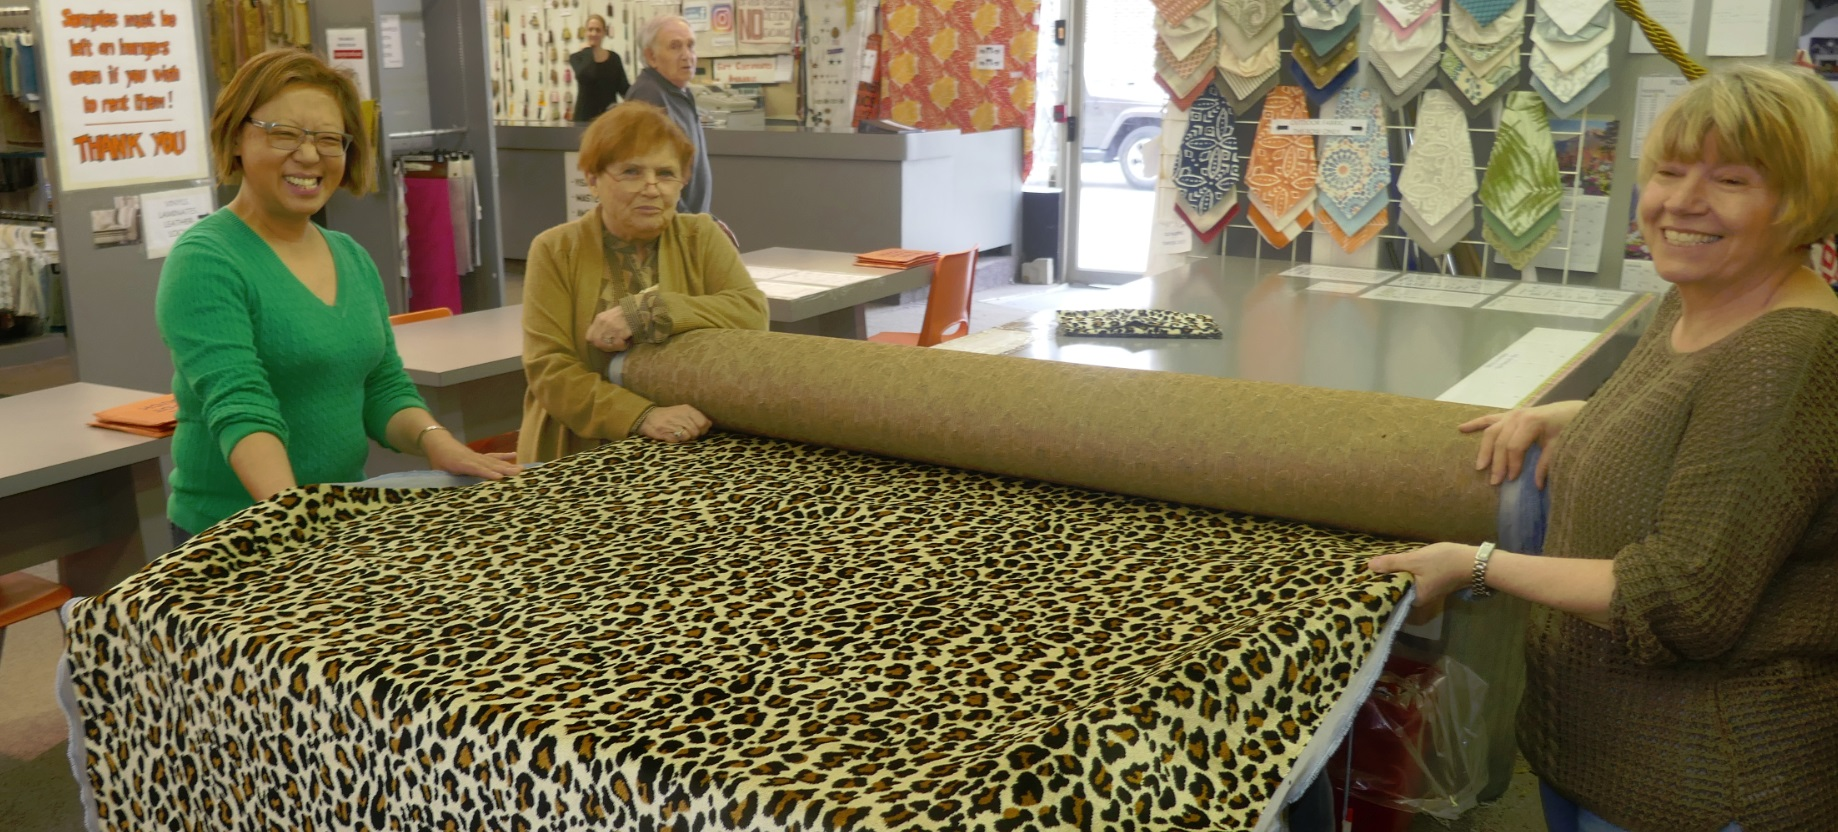 buying leopard print textile at Designer Fabric in Toronto